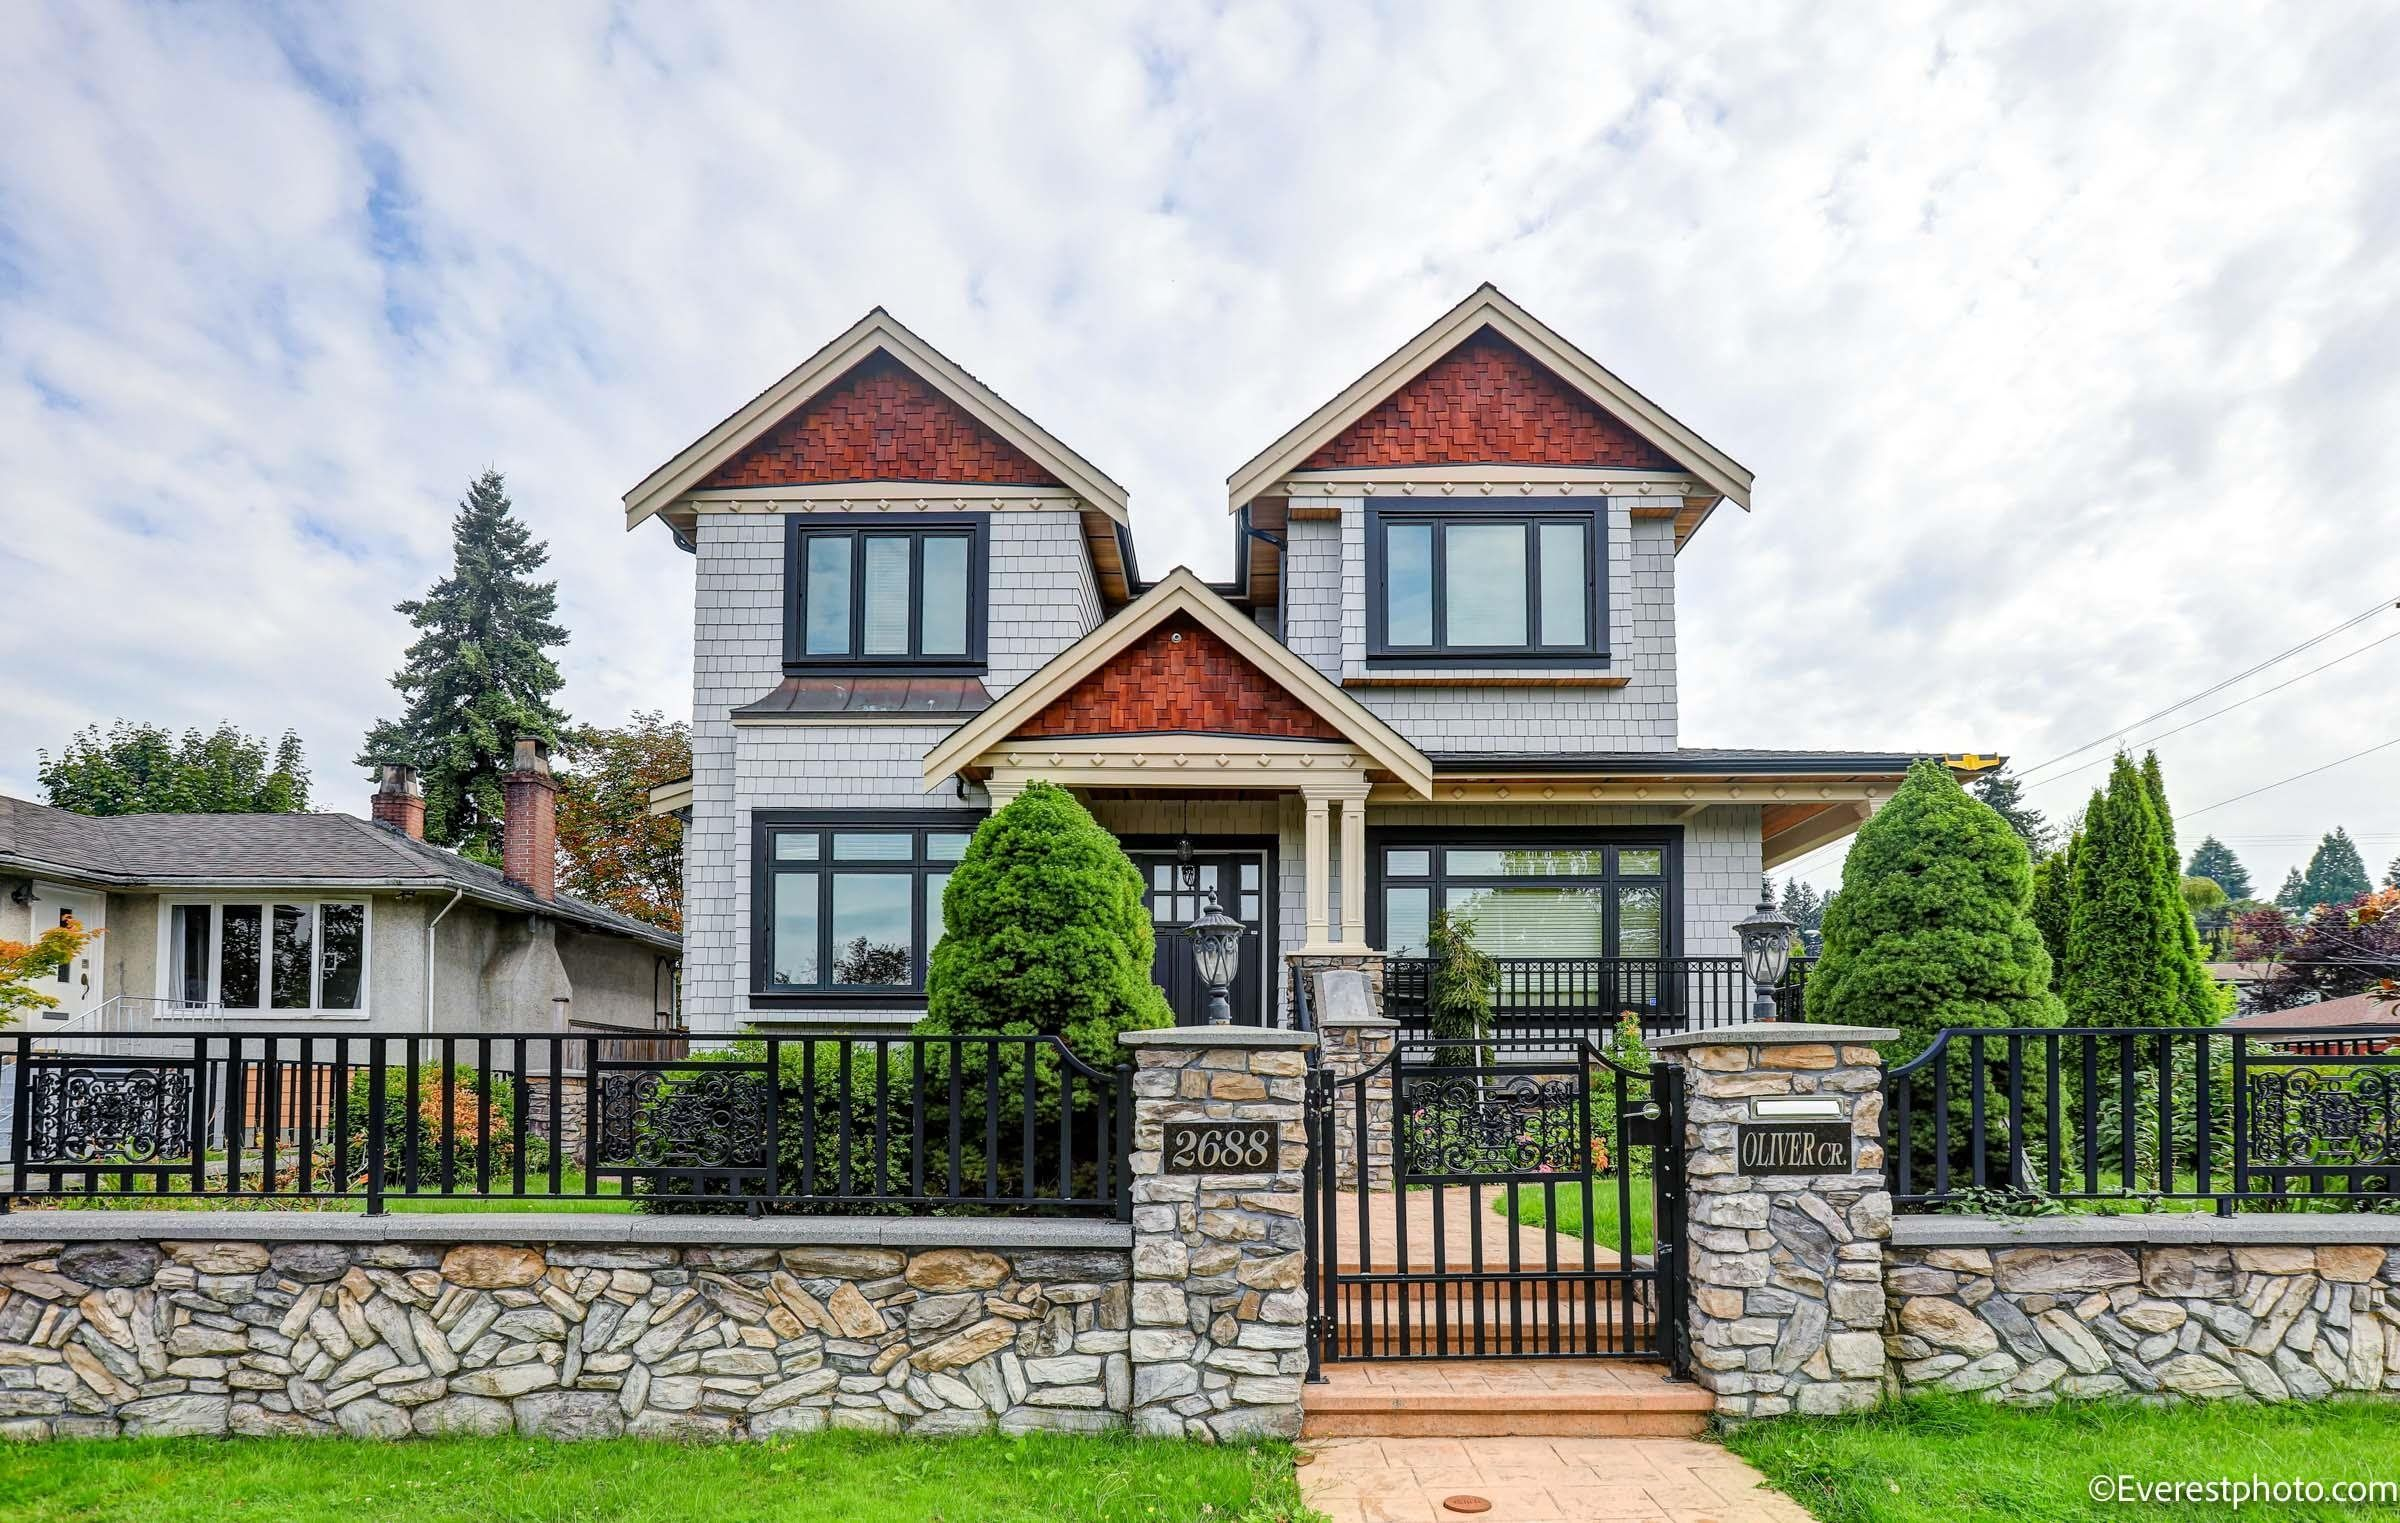 Main Photo: 2688 OLIVER Crescent in Vancouver: Arbutus House for sale (Vancouver West)  : MLS®# R2615041